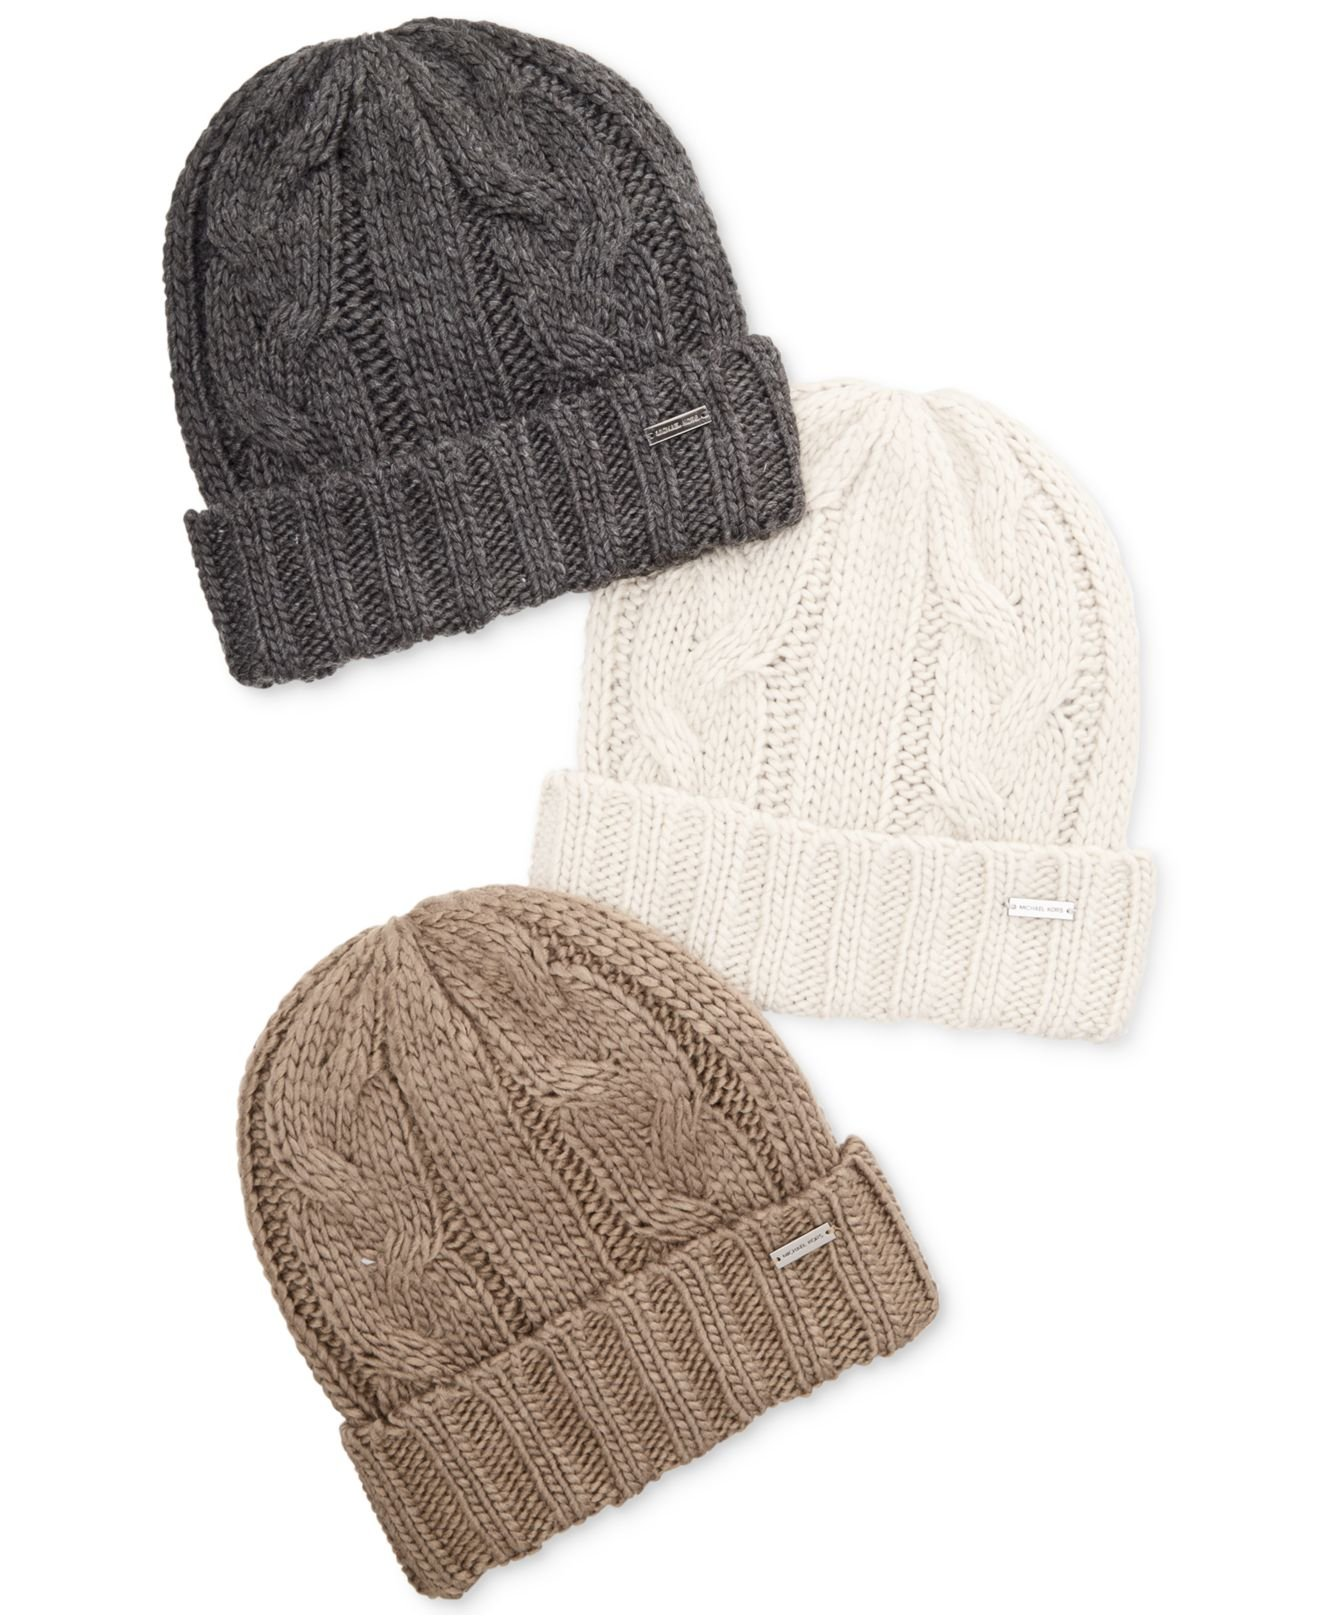 b770b6391f5f Lyst - Michael Kors Hand-Knit Cable Cuff Hat in Brown for Men